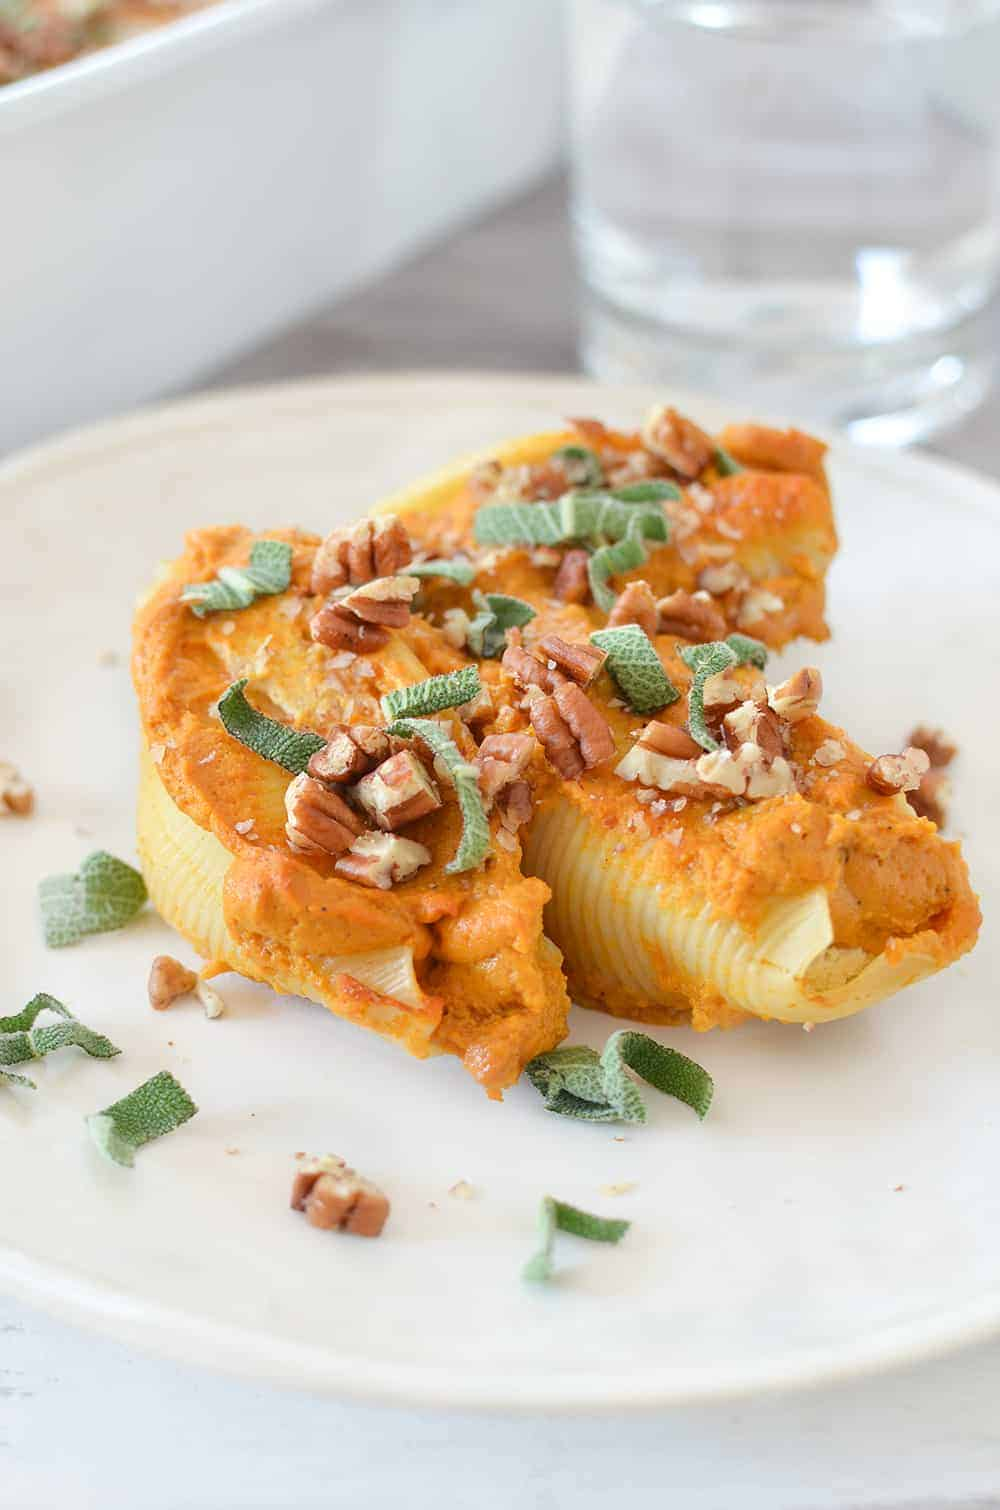 Vegan Stuffed Shells with Pumpkin Cream Sauce! Tofu ricotta stuffed into jumbo shells and baked in a creamy pumpkin sauce. Showstopper dinner for the holidays! | www.delishknowledge.com